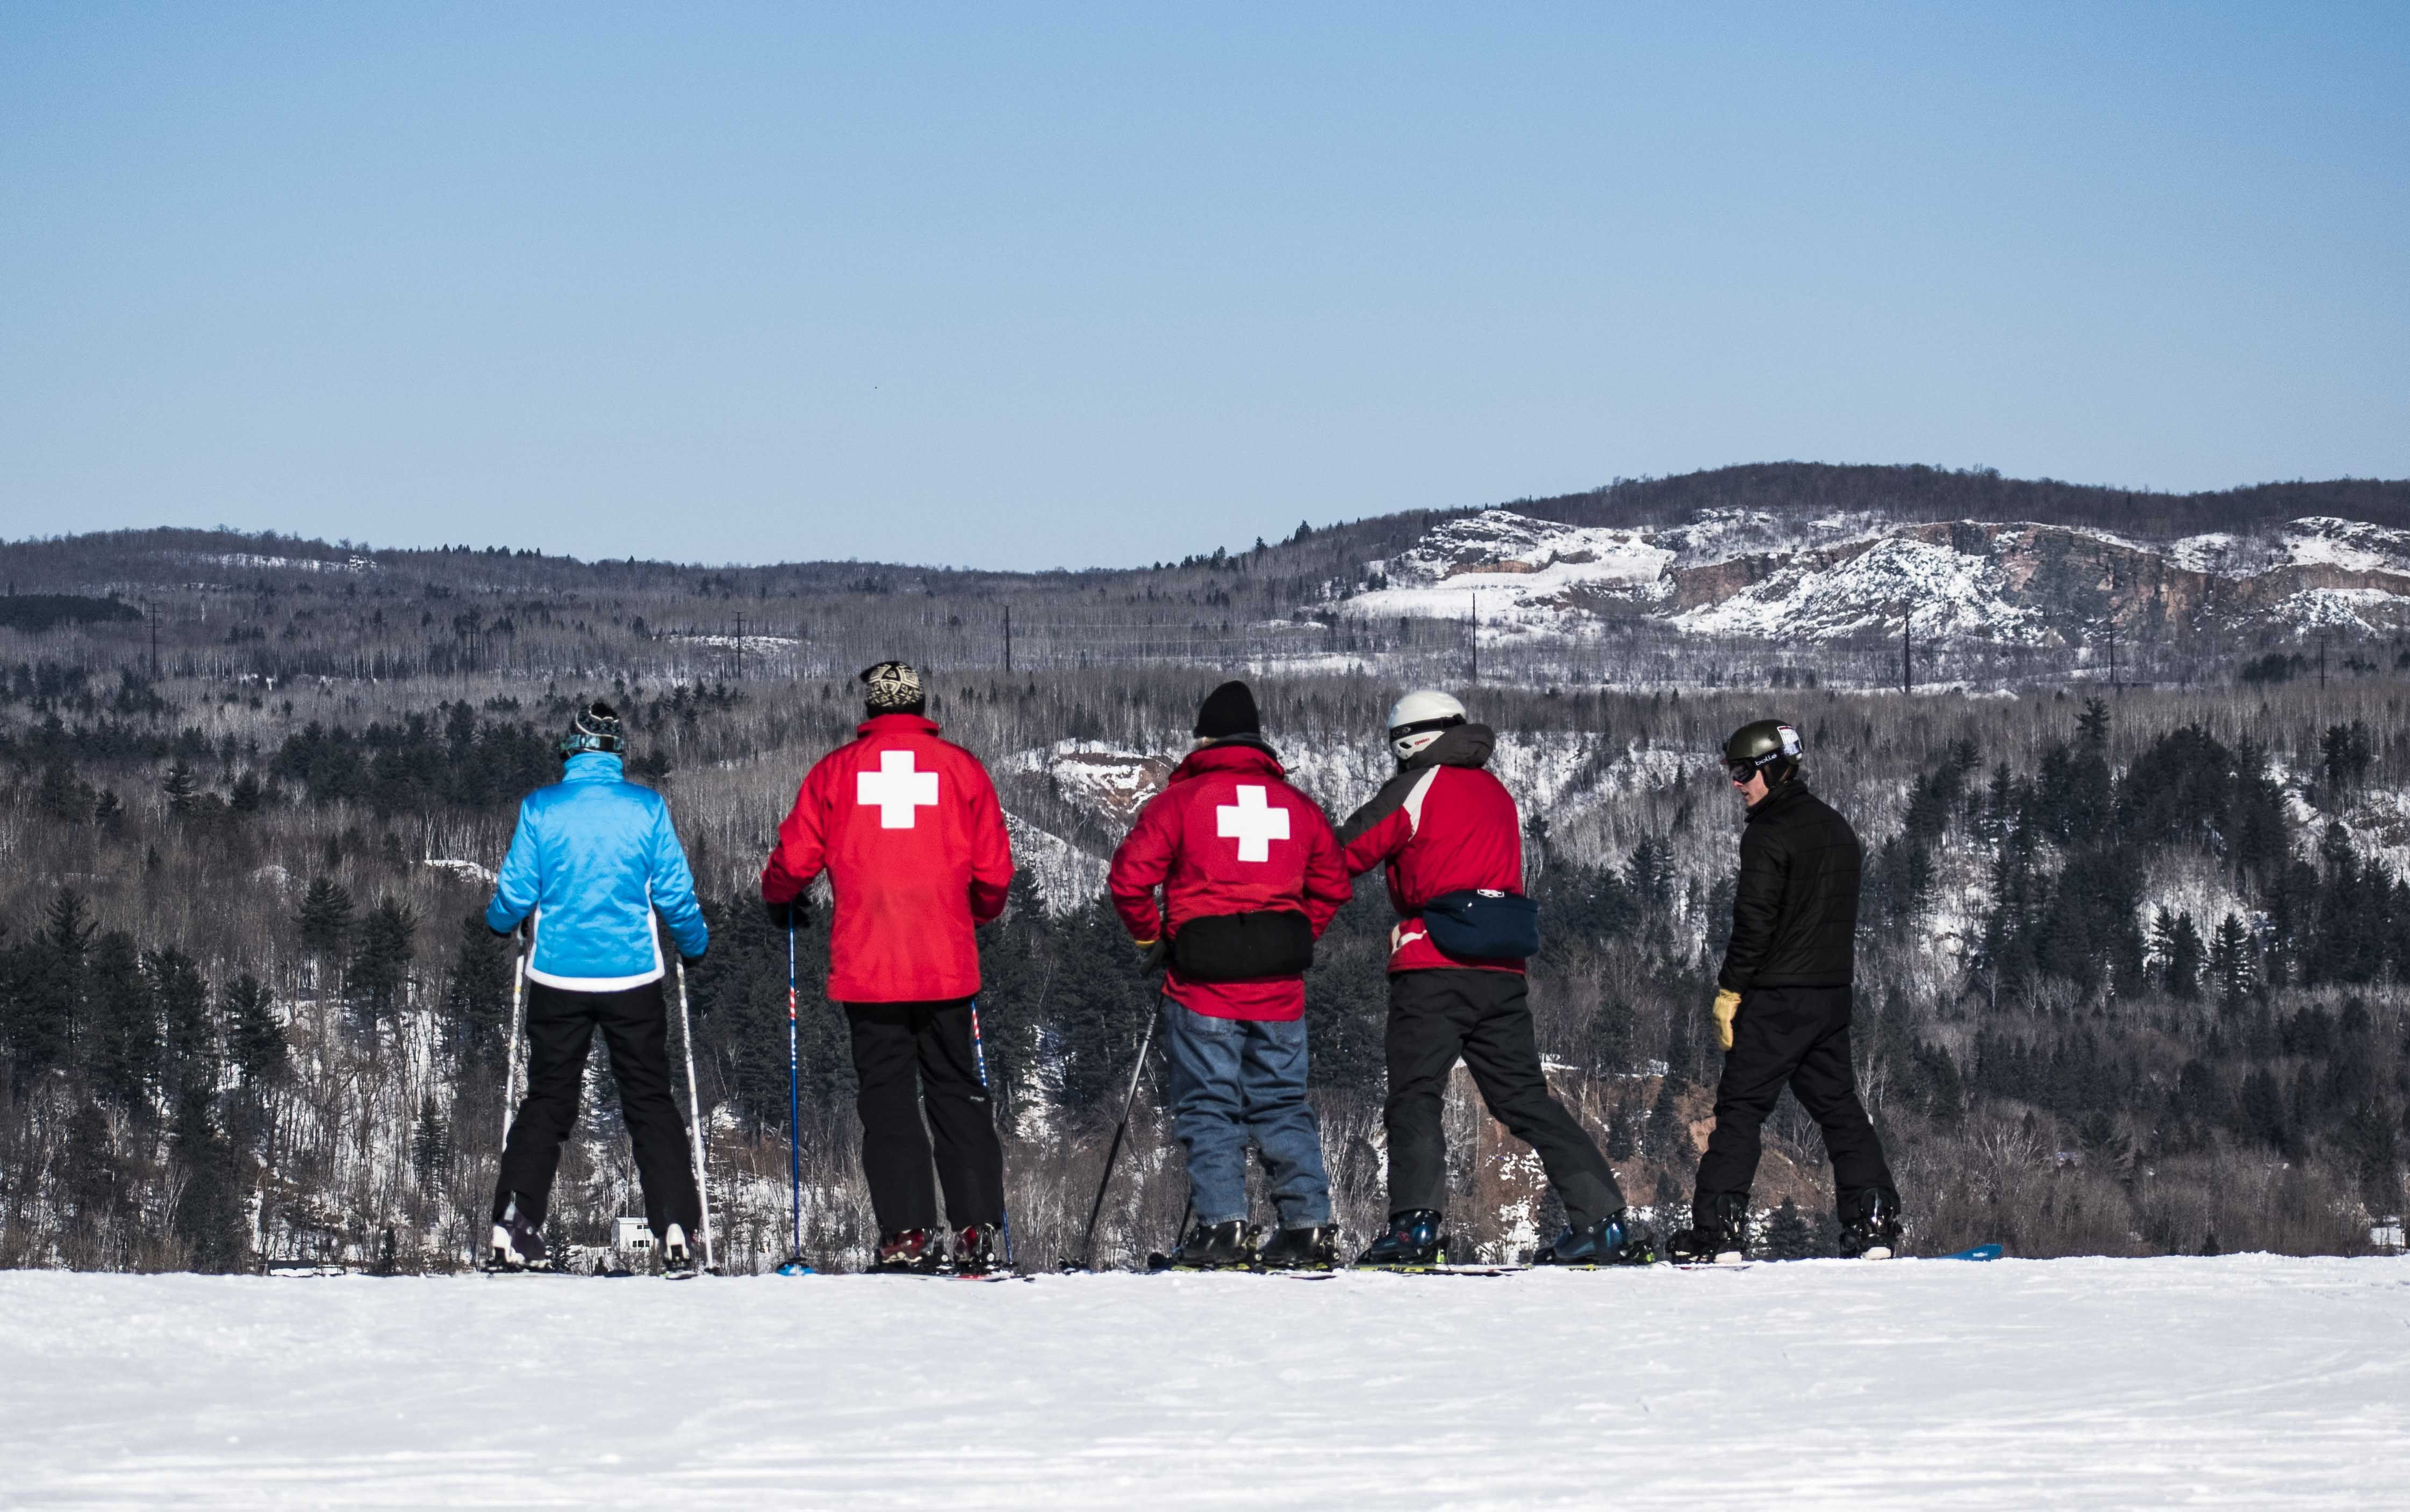 Ski Patrol Is Always Ready To Help Whenever Needed At Mont Du Lac Resort Skiing Snowboarding Mountain Biking